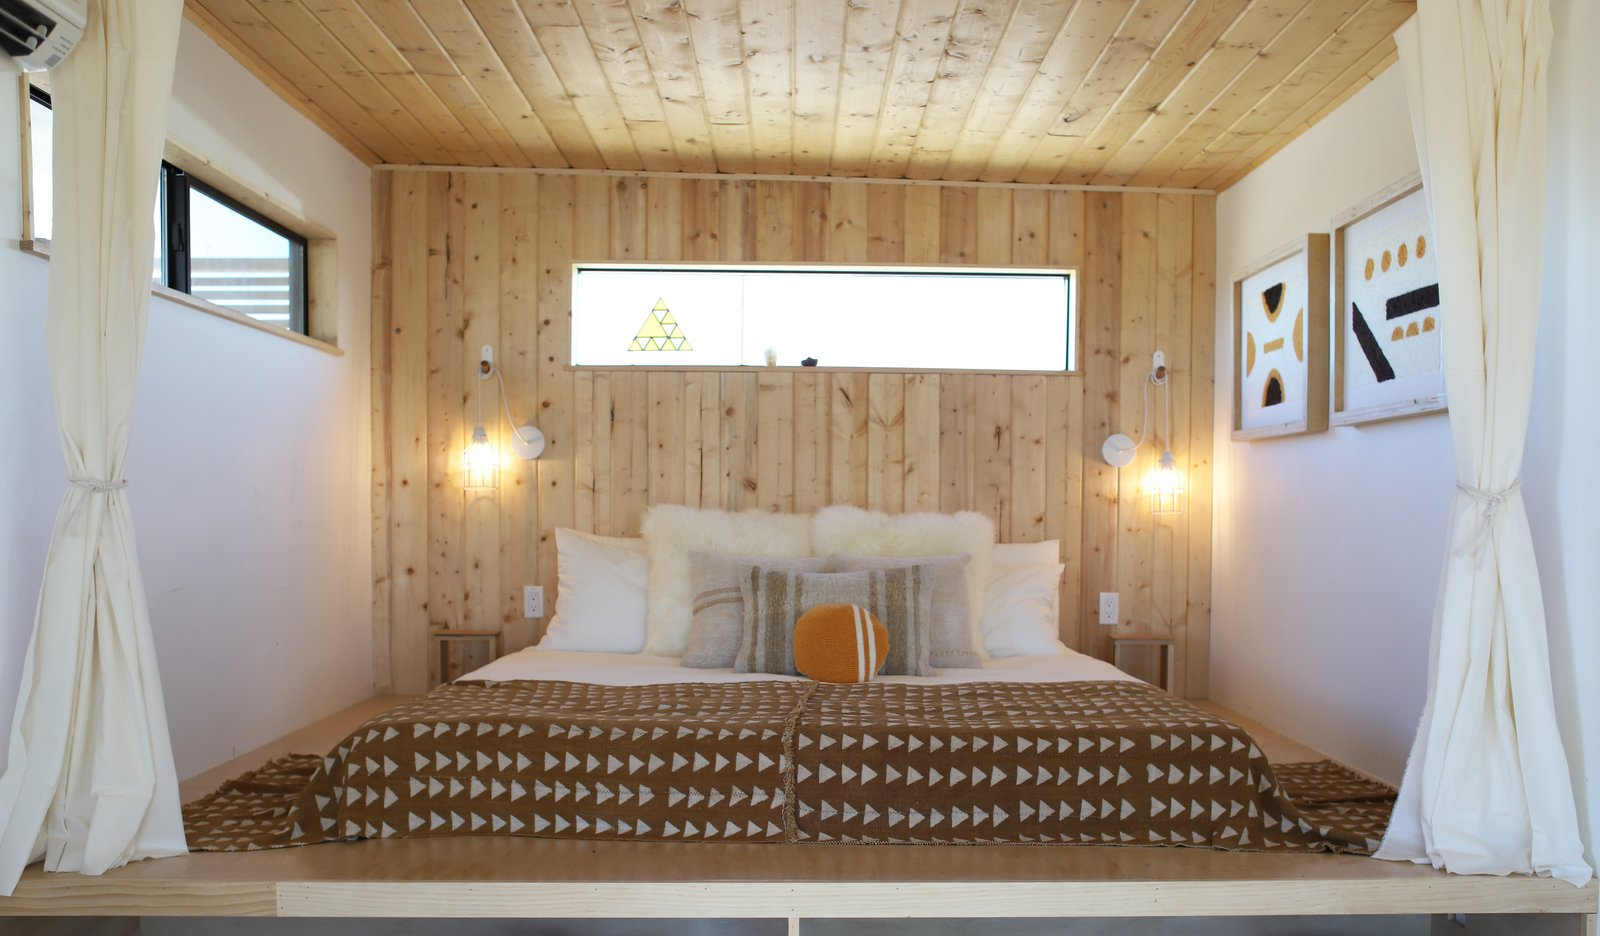 Wood paneling and a platform bed was a perfect solution for fitting a king-sized bed into a small space.